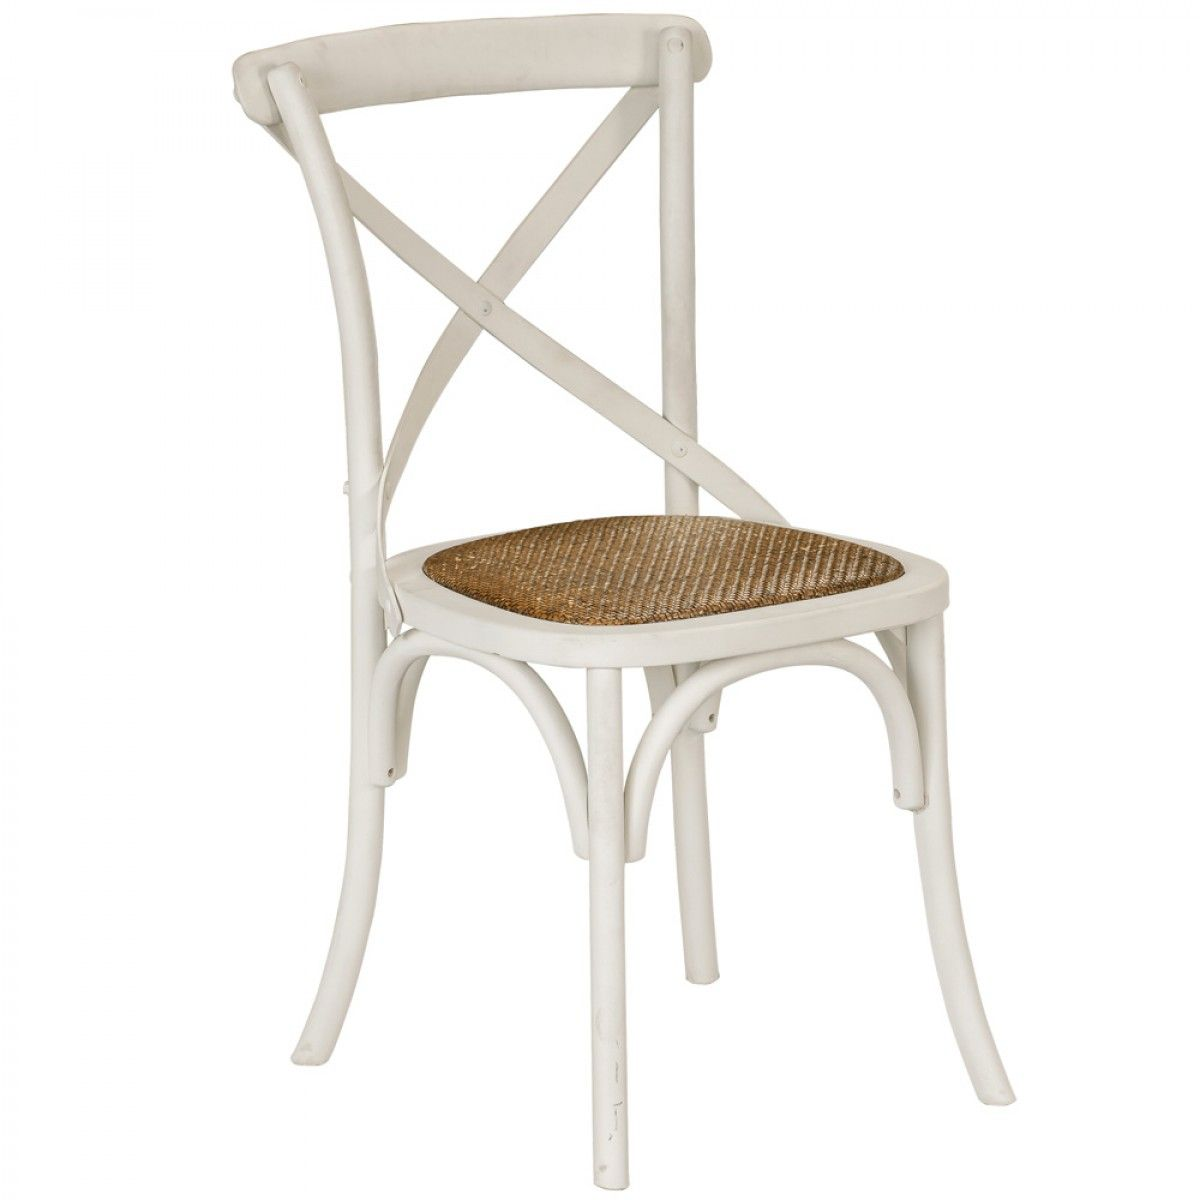 Provincial Cross Back Chair Vintage White   Chairs U0026 Barstools   Dining